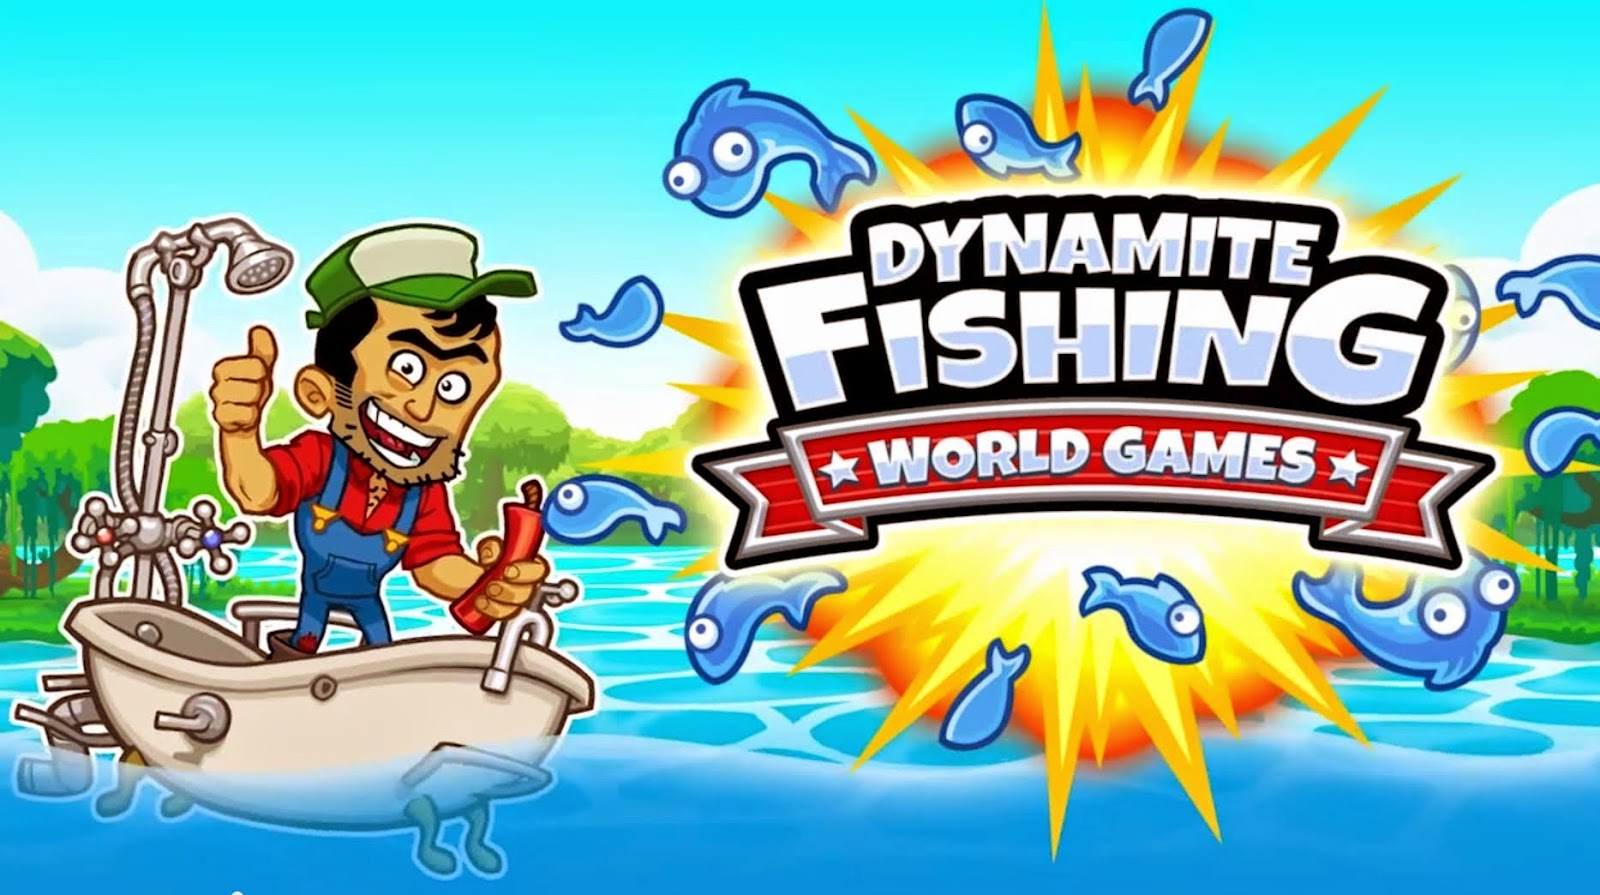 Dynamite fishing world games gameplay android proapk for Fish world games